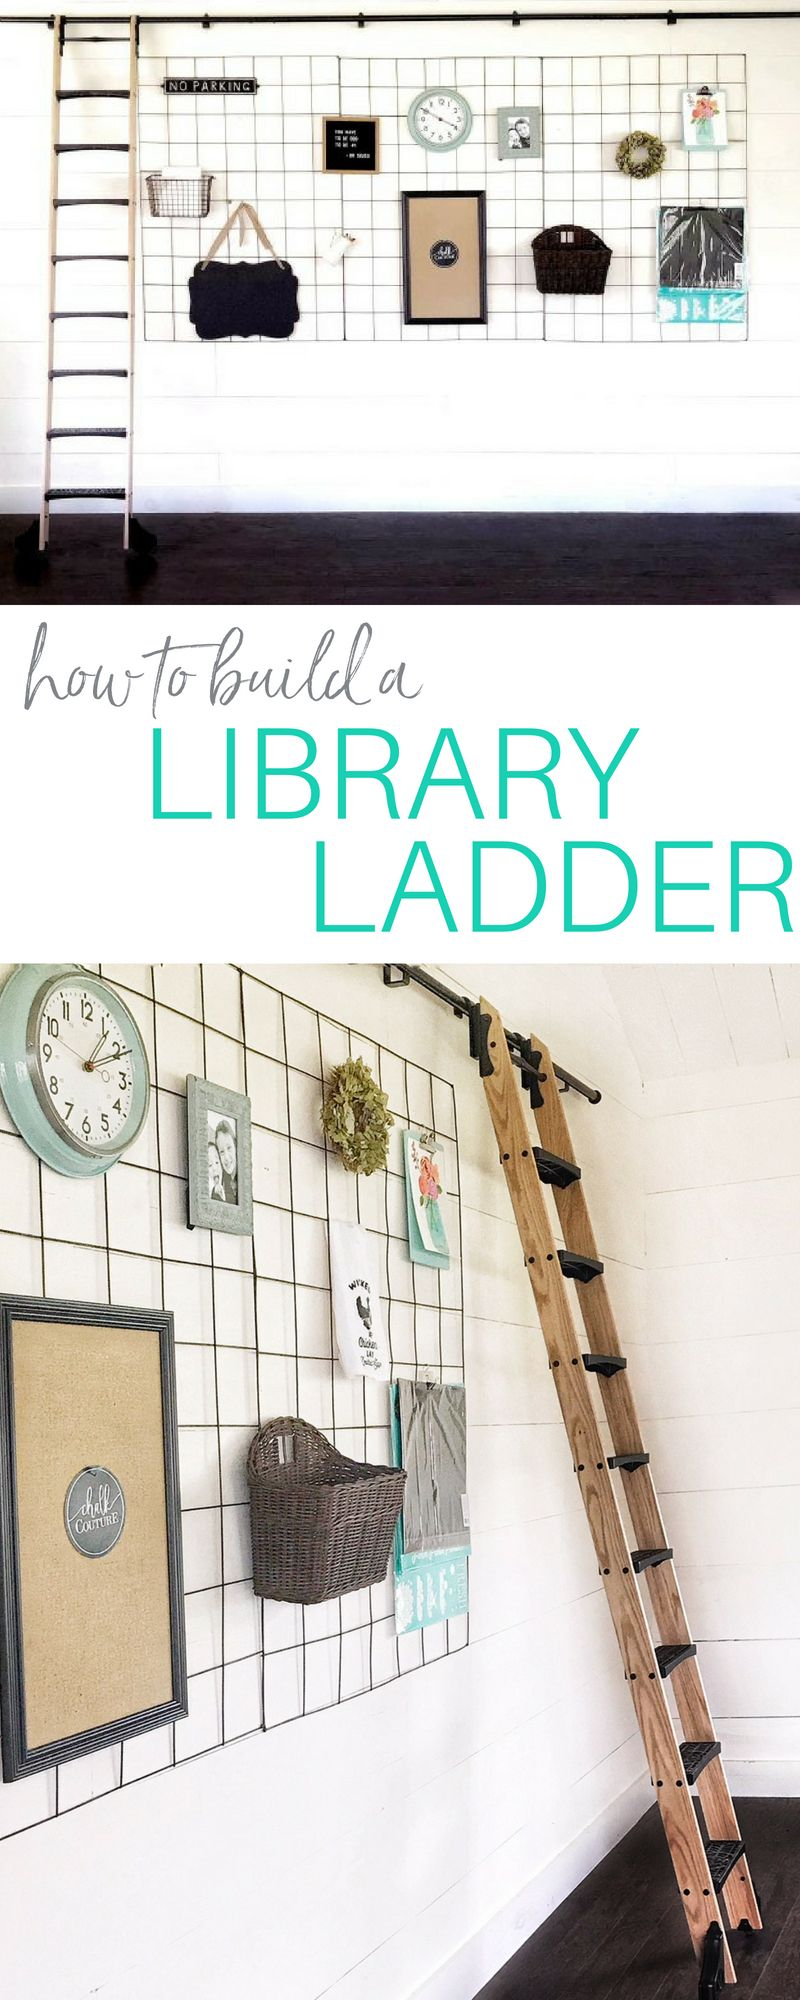 How to build a library ladder step by step indepth video